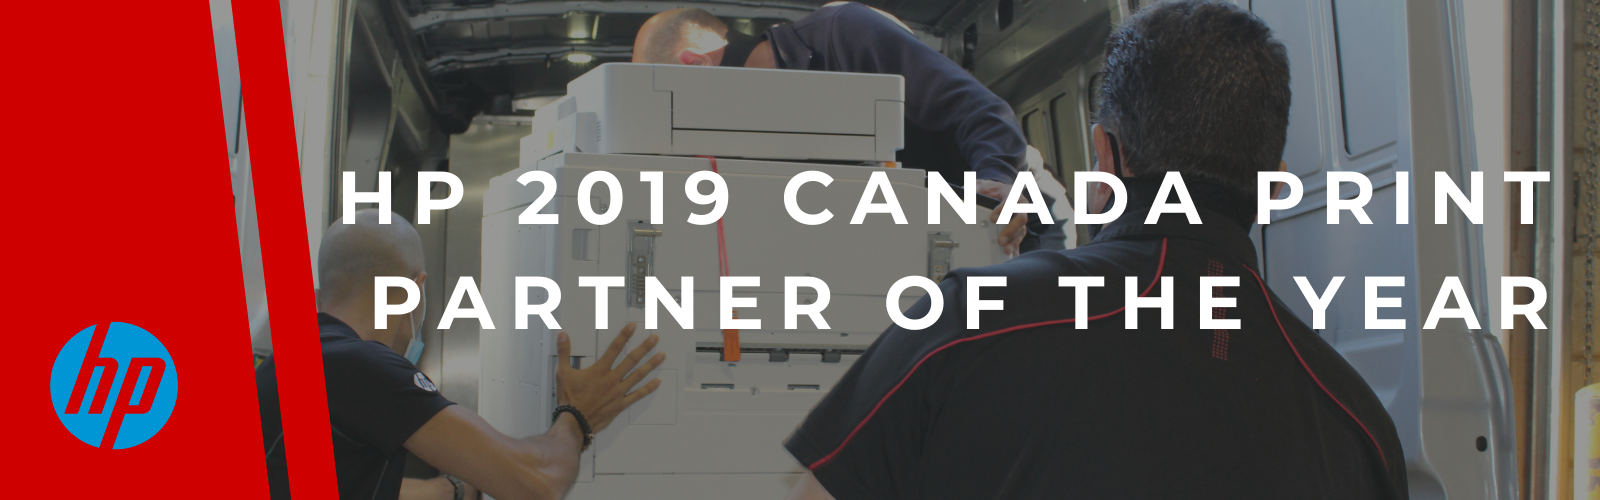 HP-2019-Canada-Print-Partner-of-the-Year-Award.